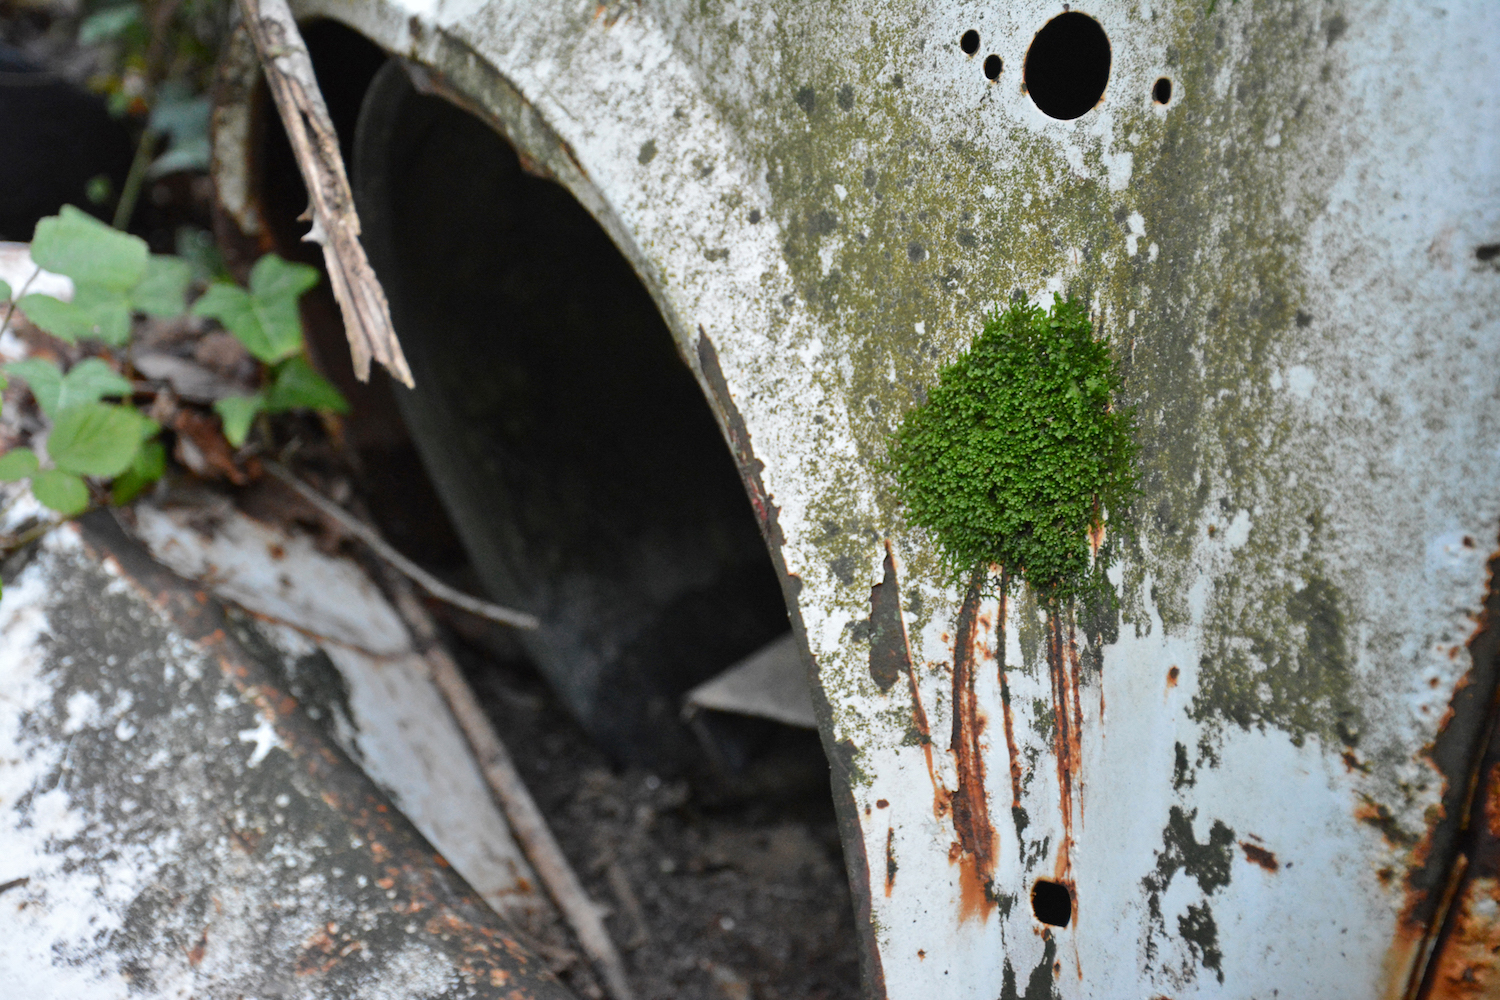 abandoned old car moss grows on metal